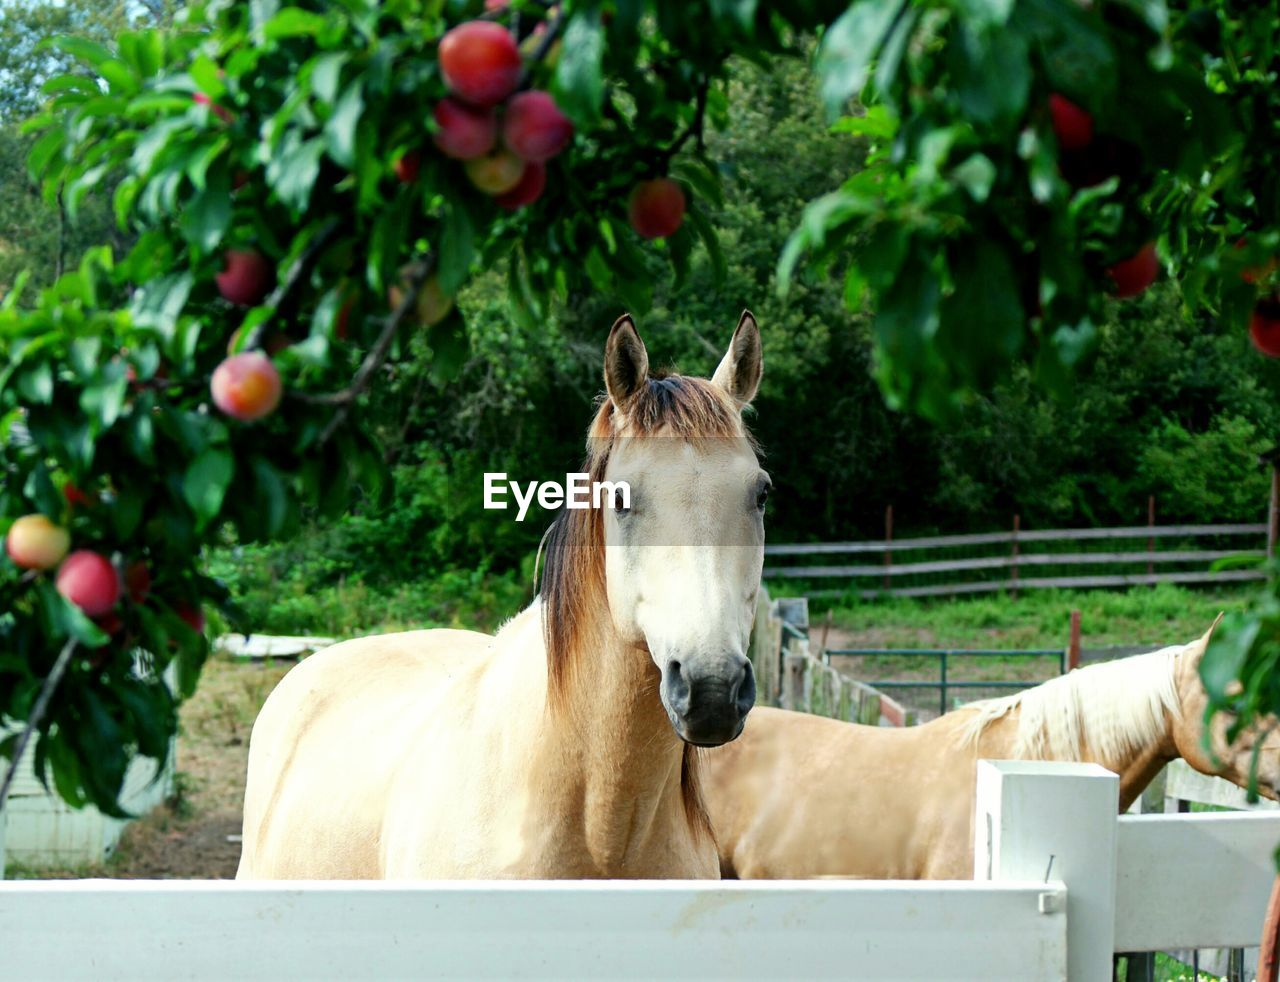 Horses In Stable By Apple Tree